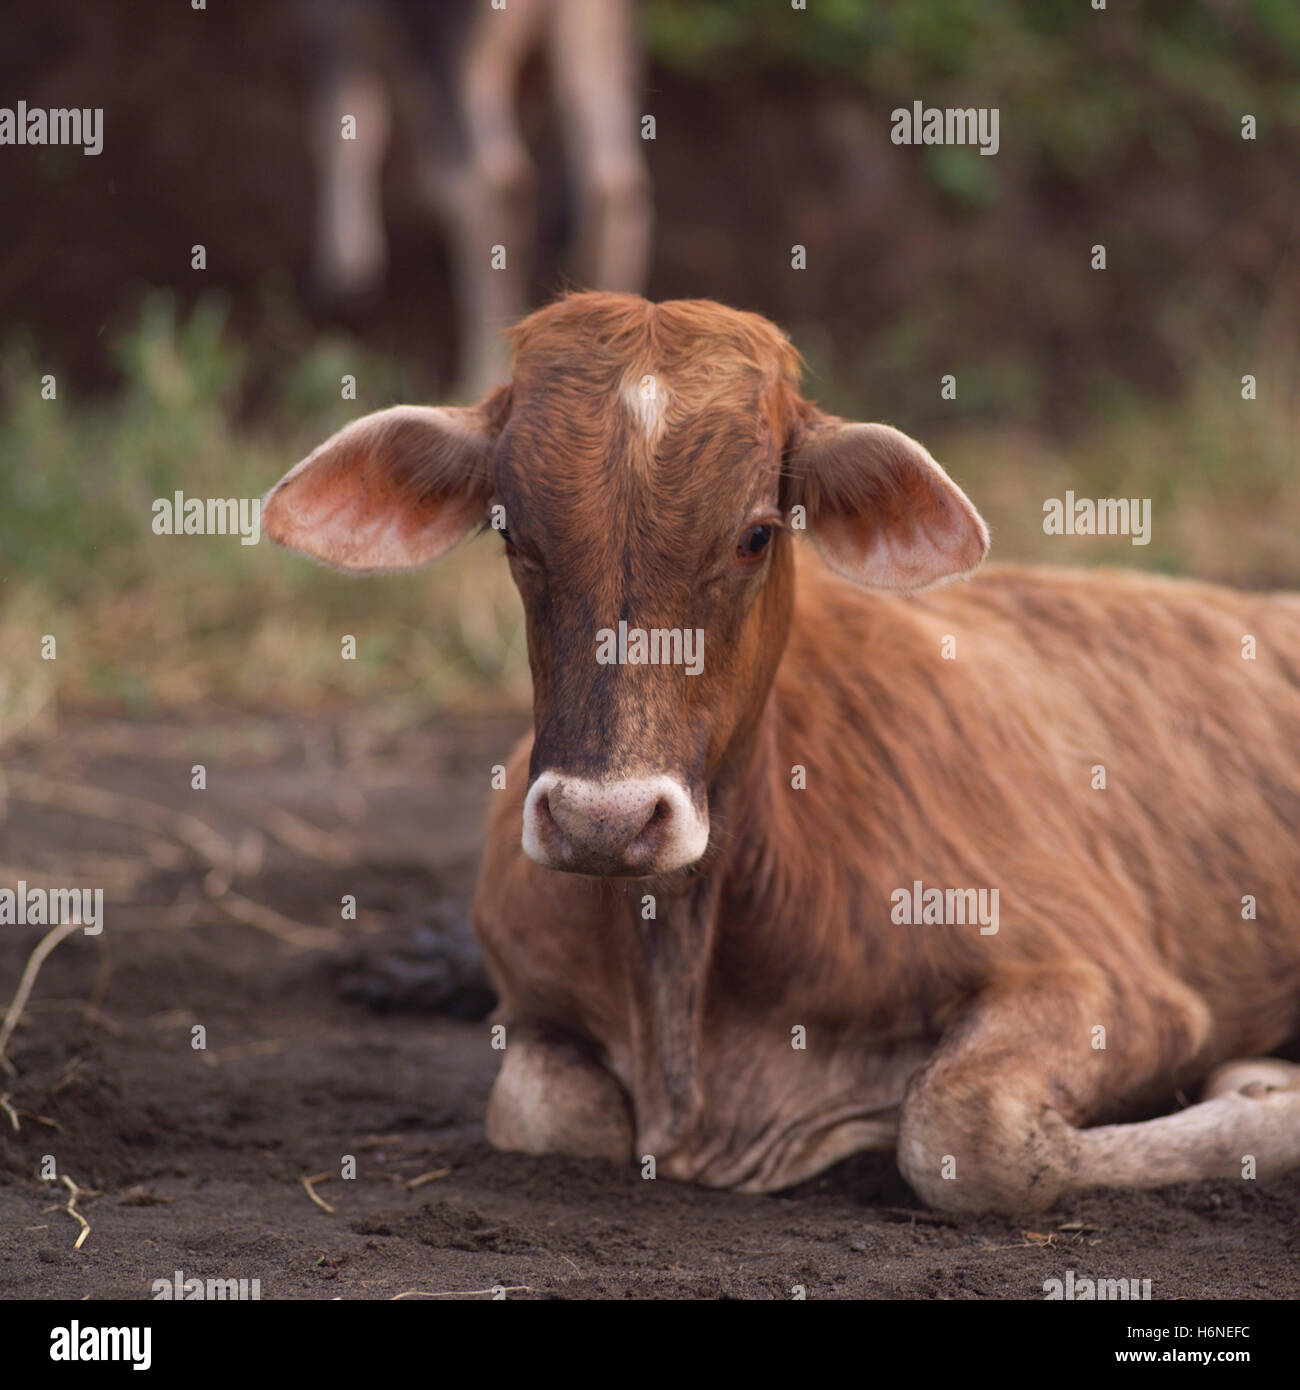 Baby Name Of Cow